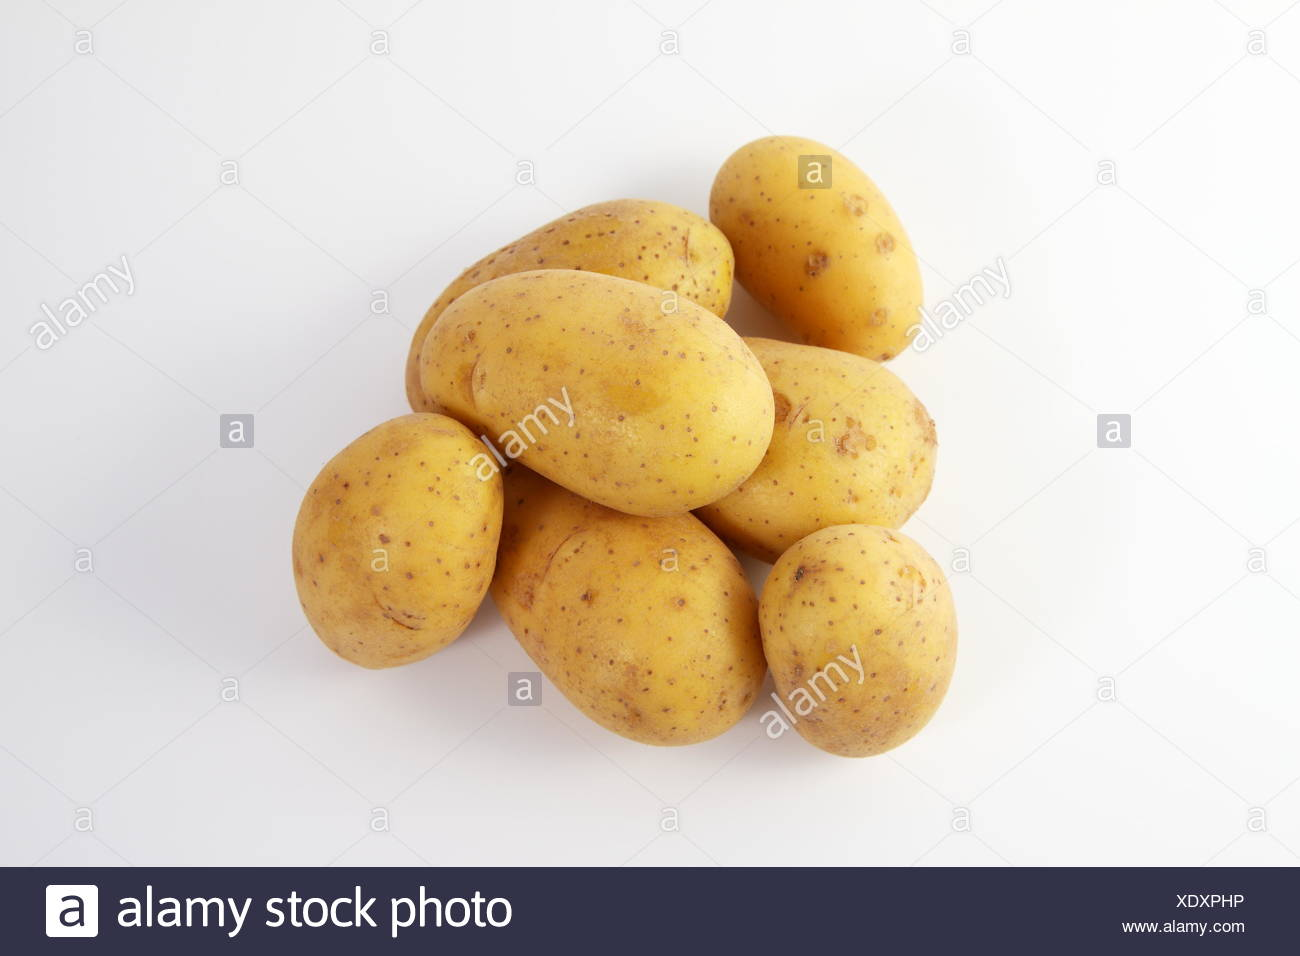 vegetable basic foods healthfully nutrition potatoes healthy